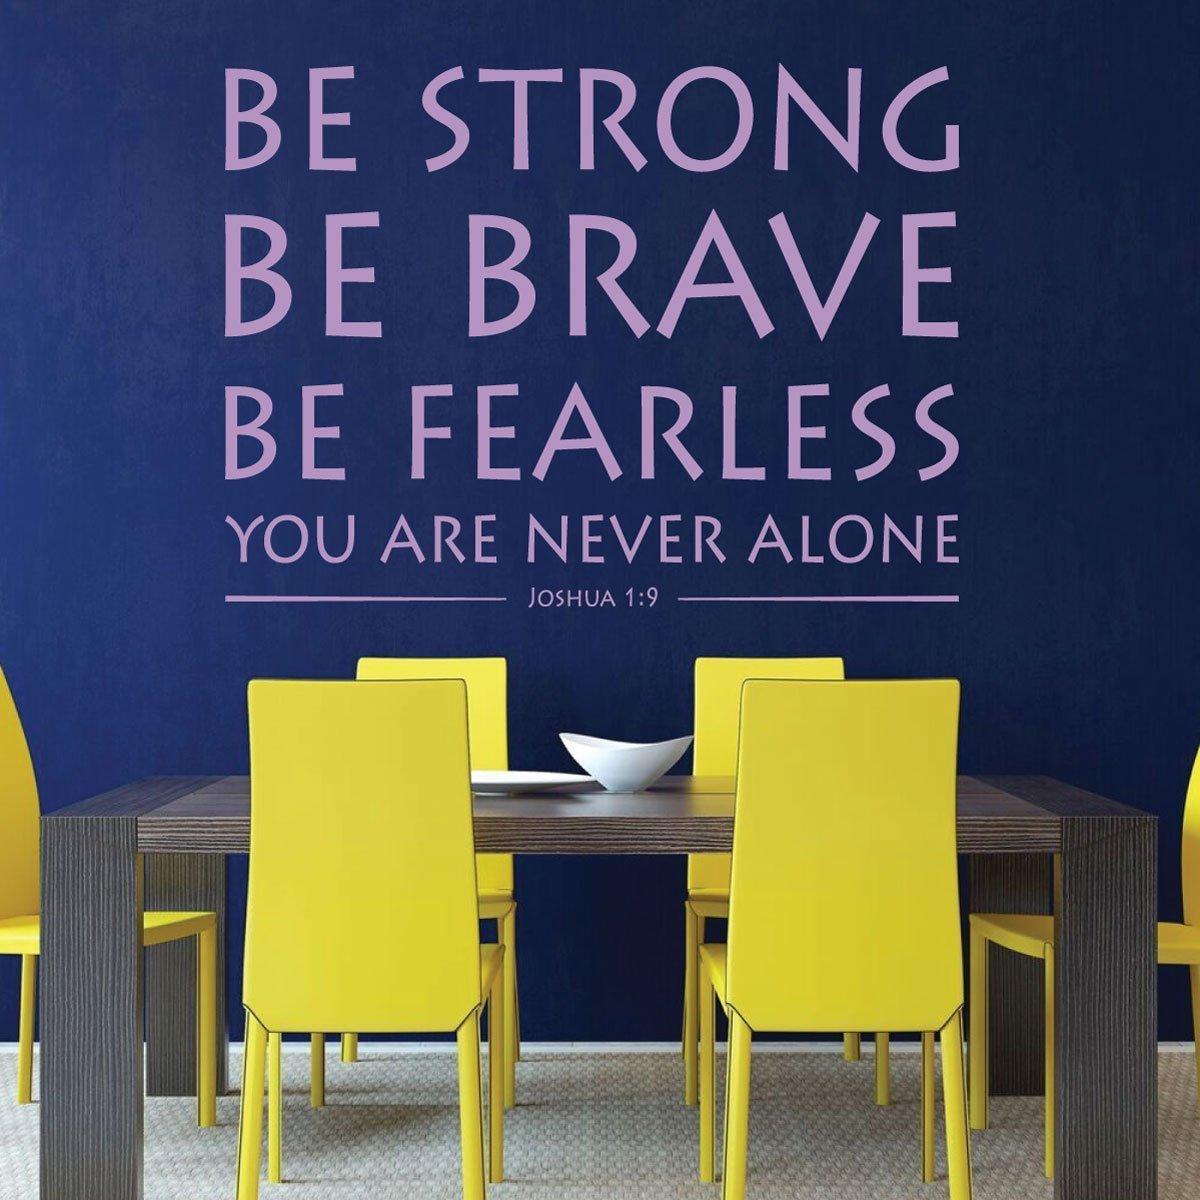 Bible Verse Wall Art Joshua 1 9 Be Strong Be Brave Be